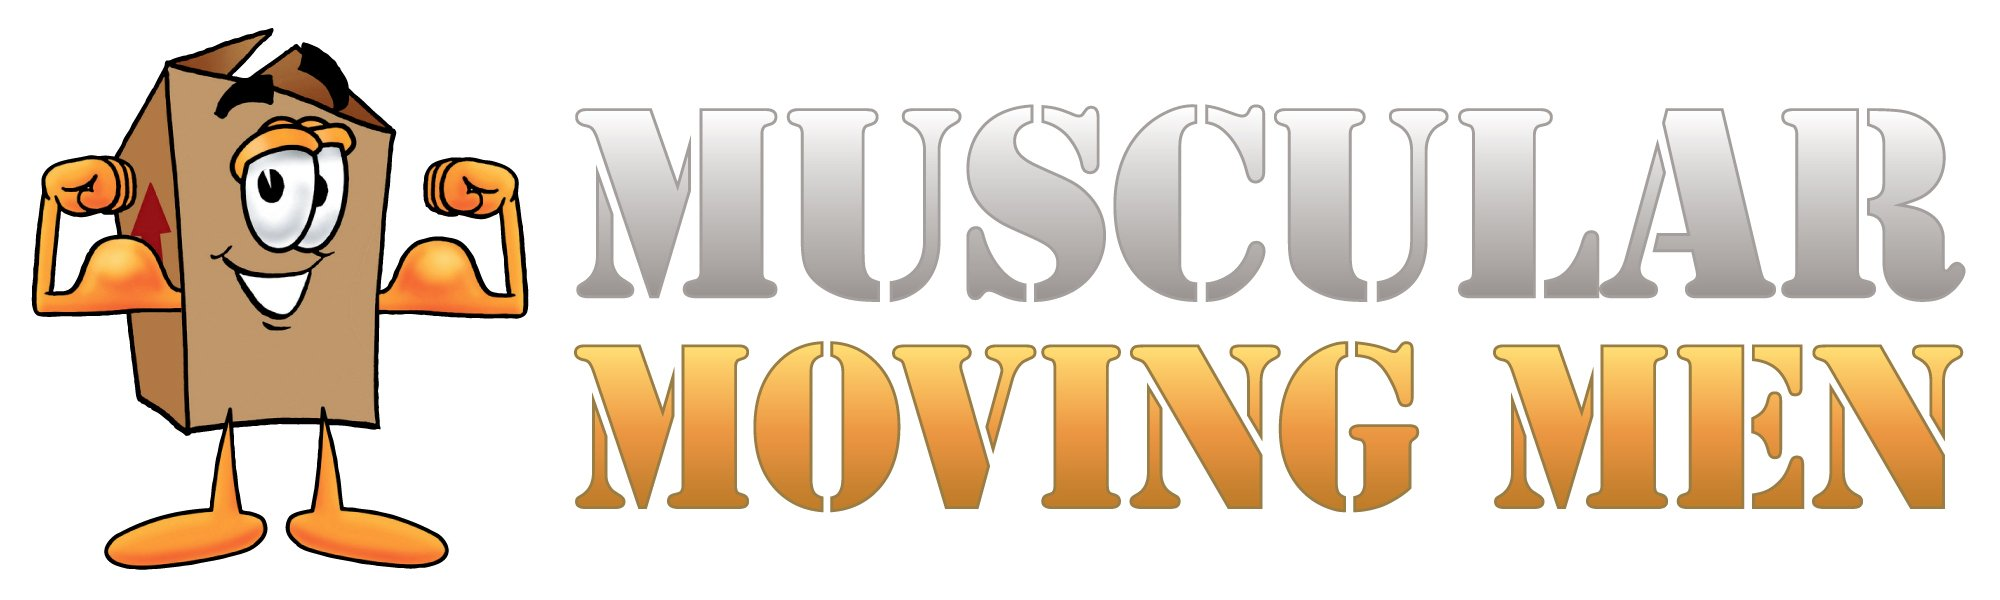 Muscular Moving Men Logo